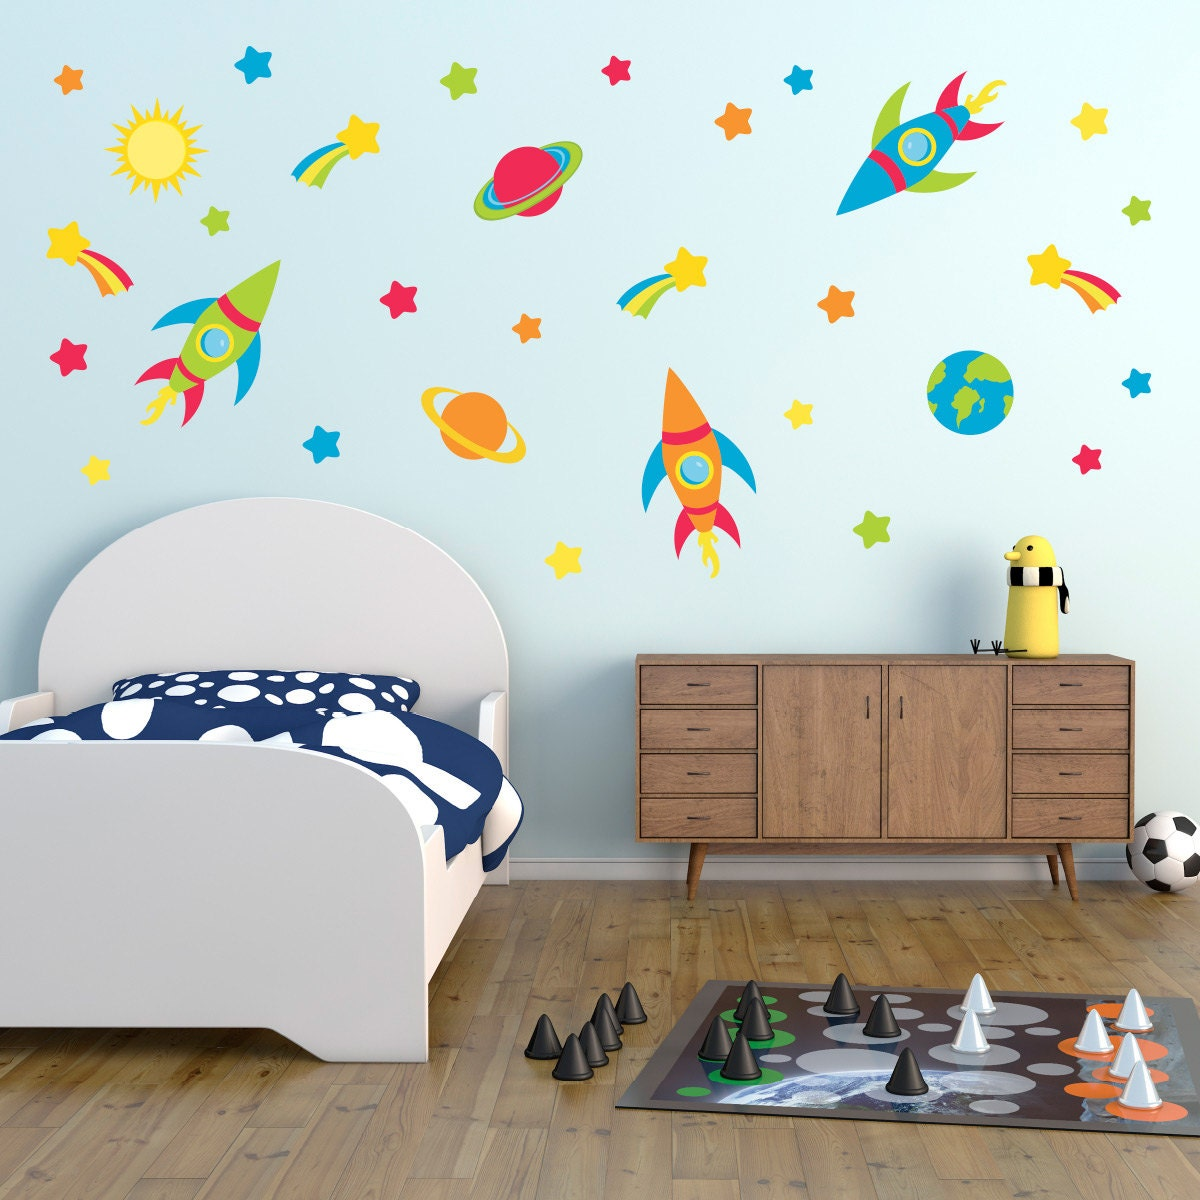 Space Wall Stickers Rocket Wall Decals Space Planets Wall Art Star Wall Transfer  Full Colour Wall Stickers  PPA014